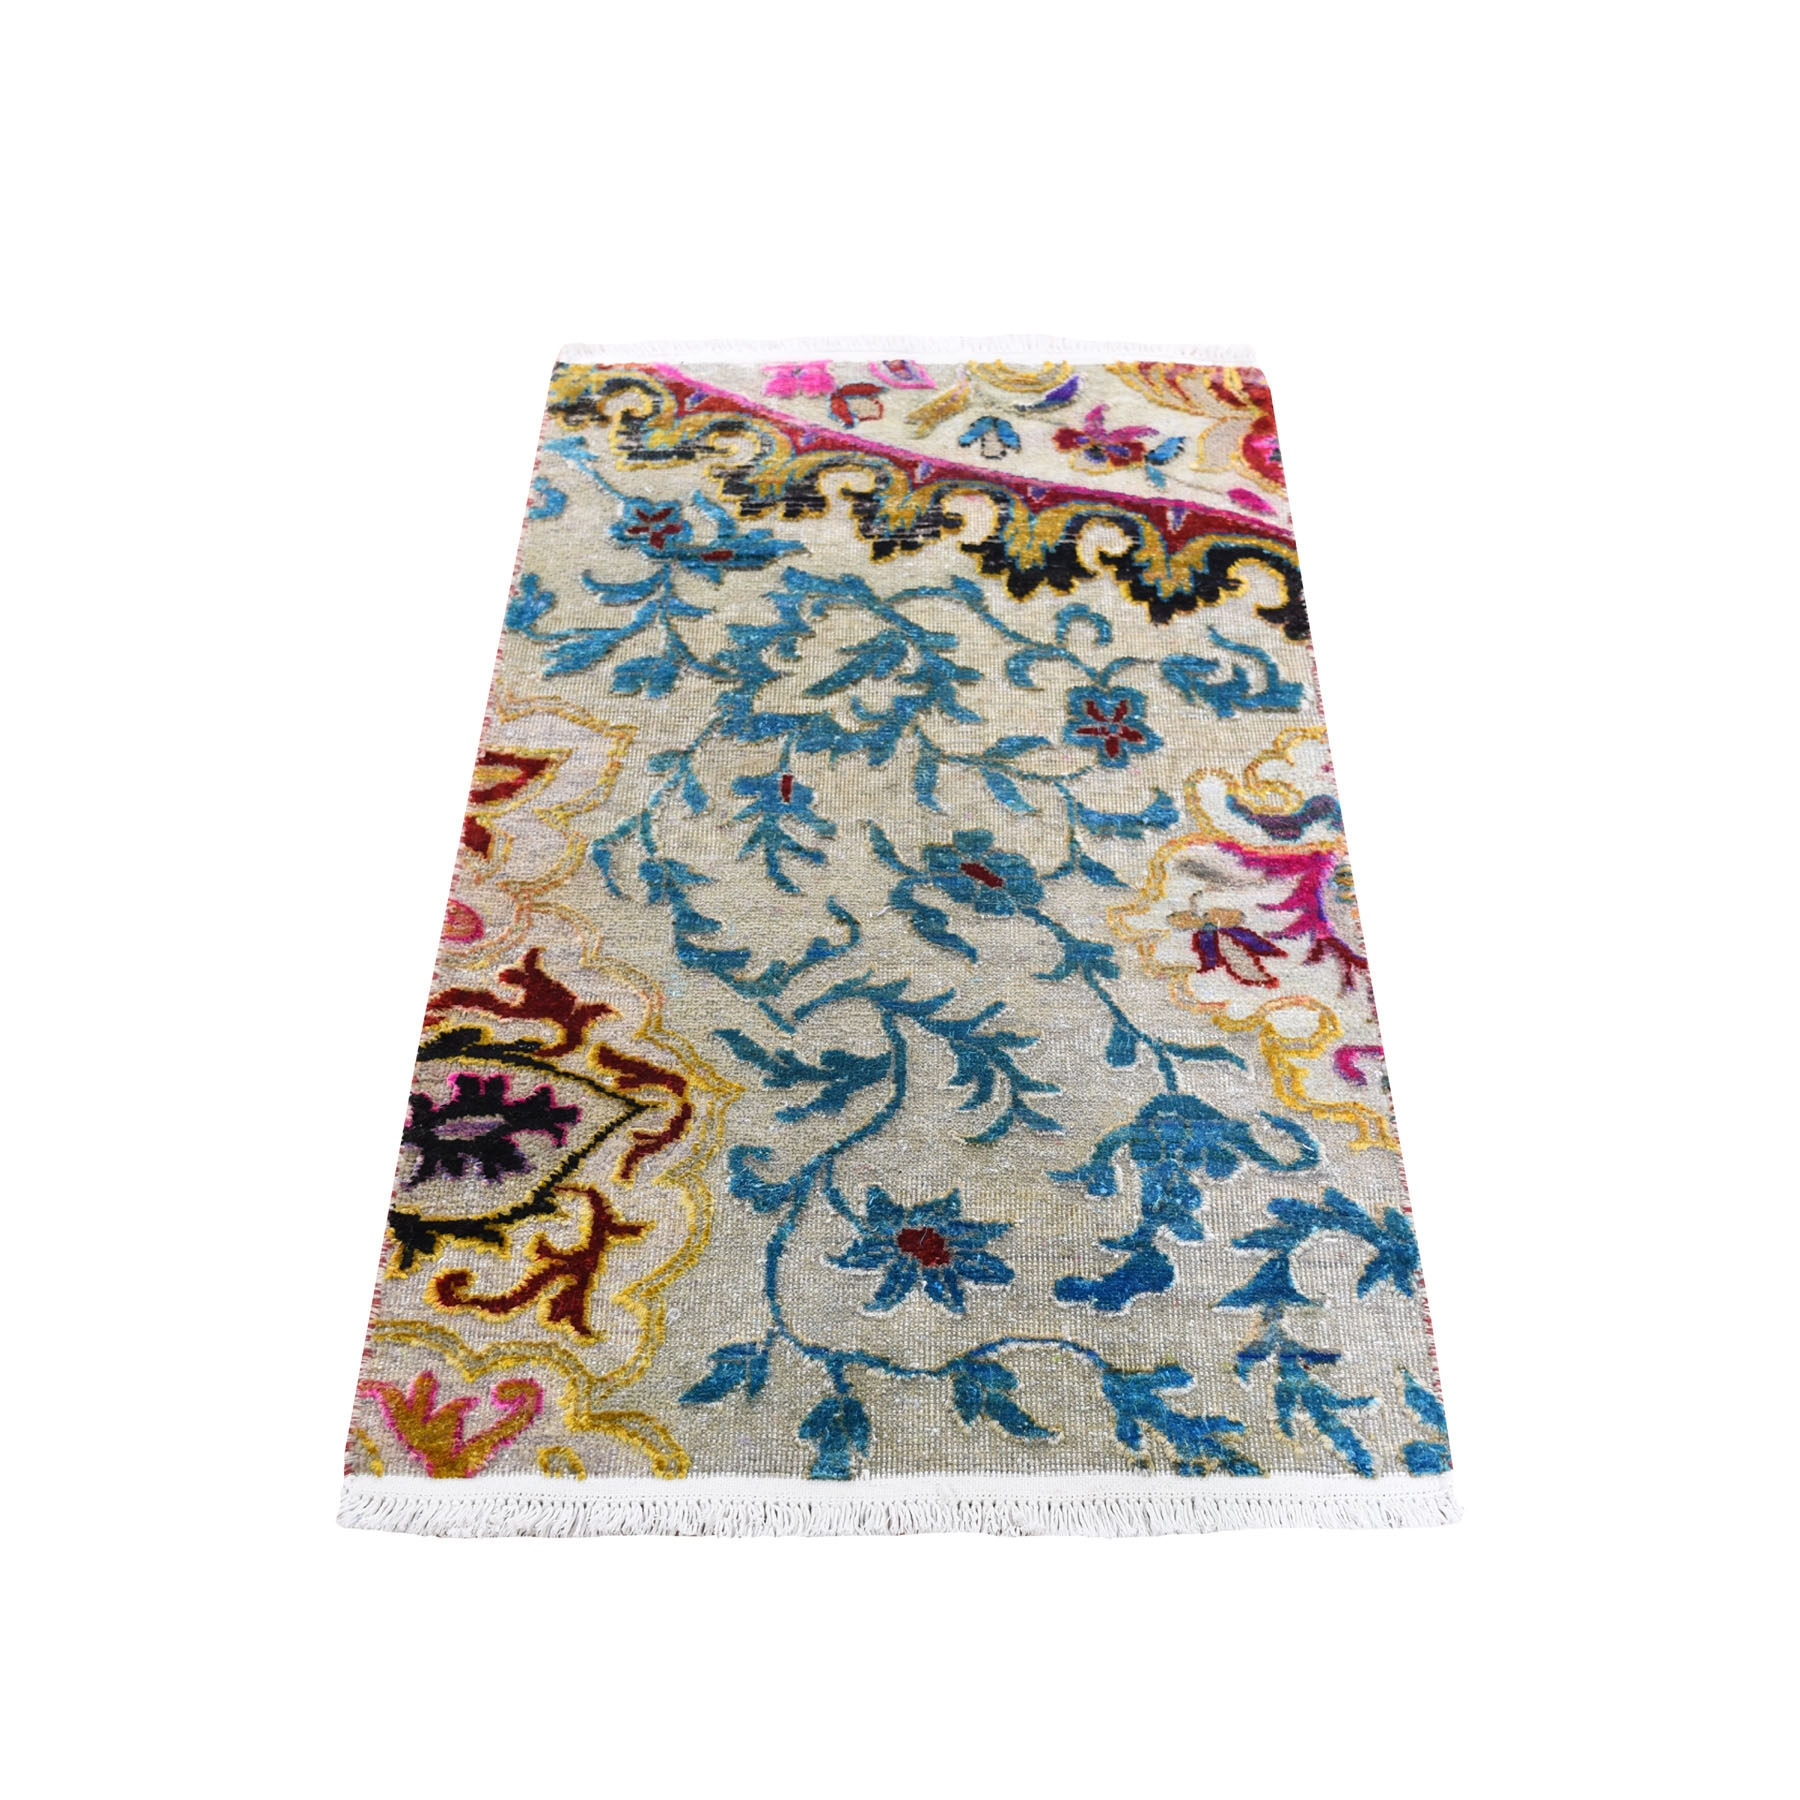 Real Silk Collection Hand Knotted Multicolored Rug No: 0193922